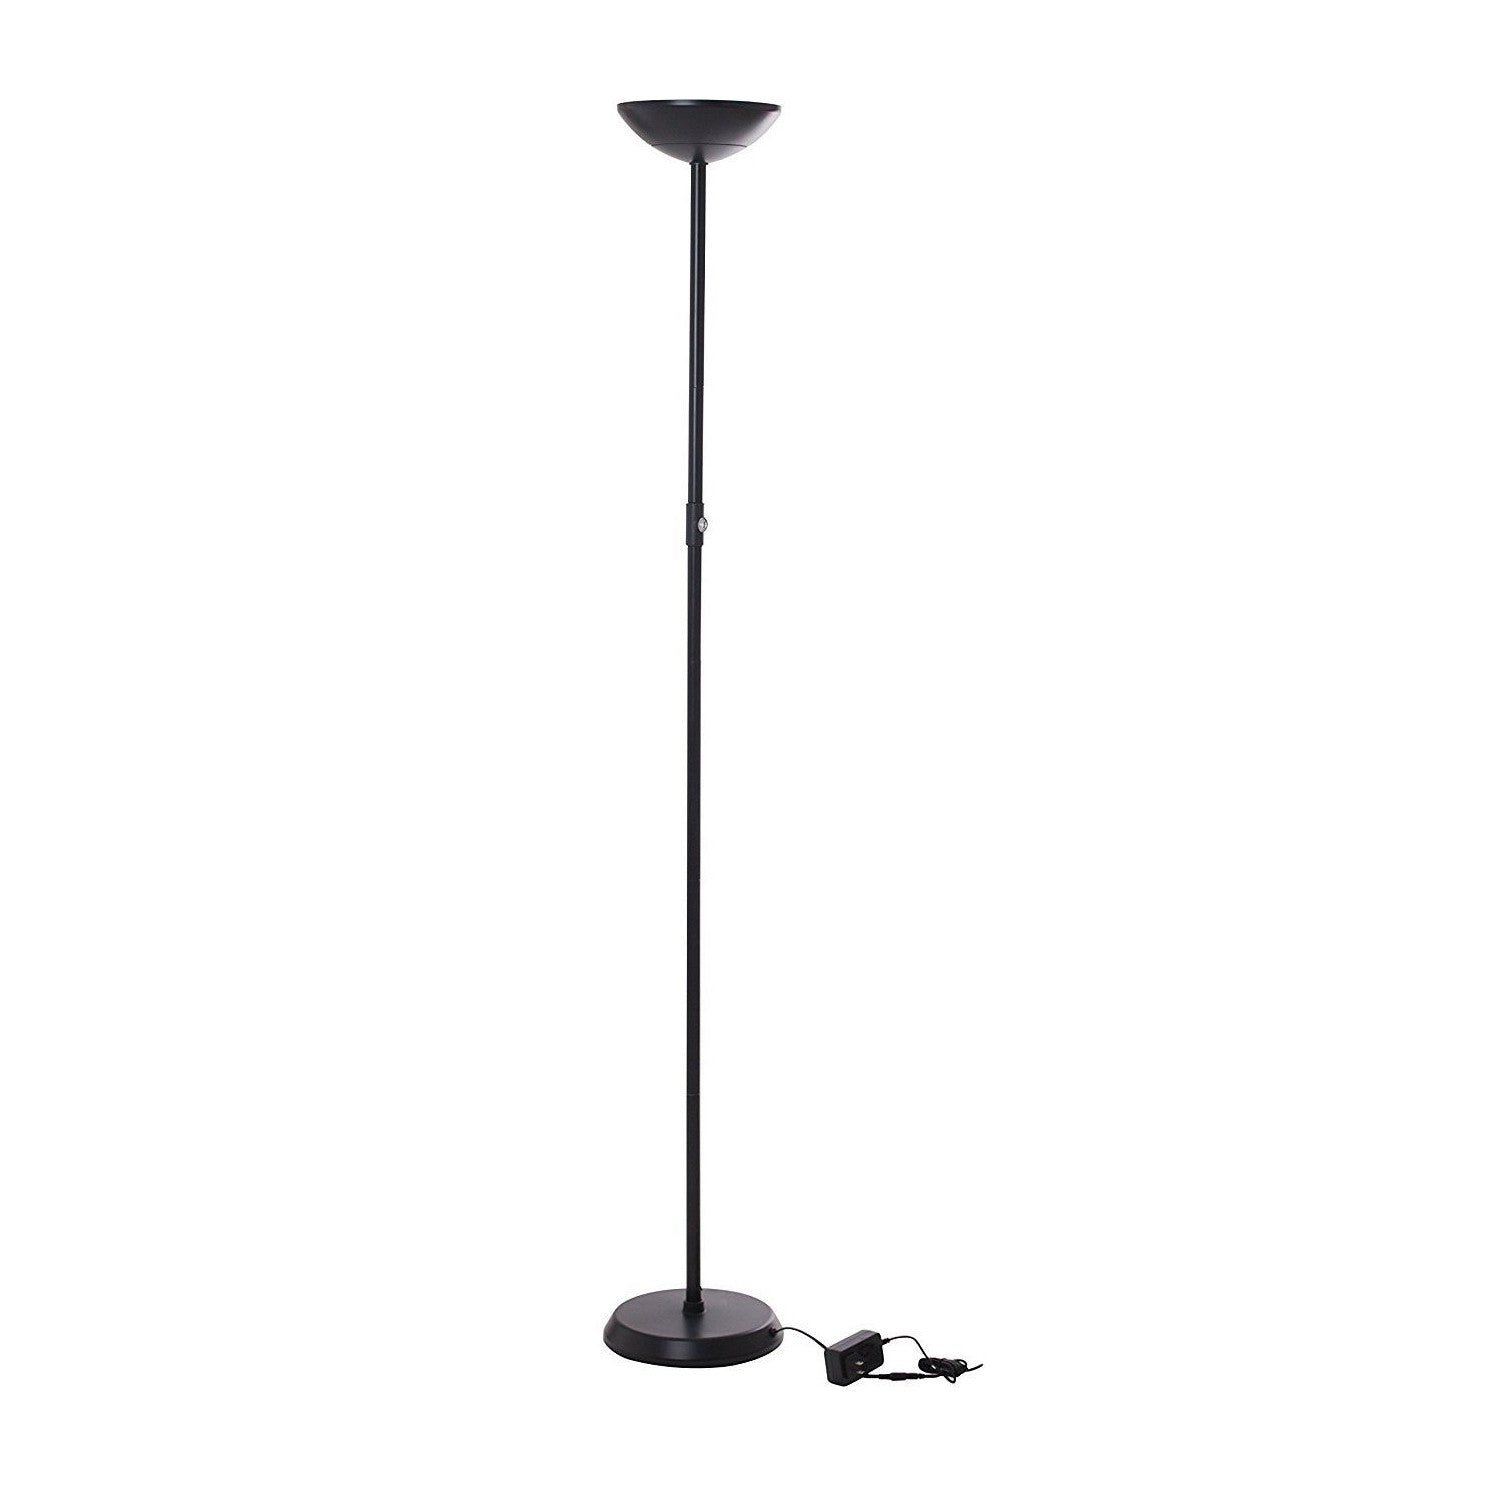 brightech store  sky lite led torchiere floor lamp – watt  - brightech store  sky lite led torchiere floor lamp – watt ultrabrightpowersaver with builtin dimmer – black color